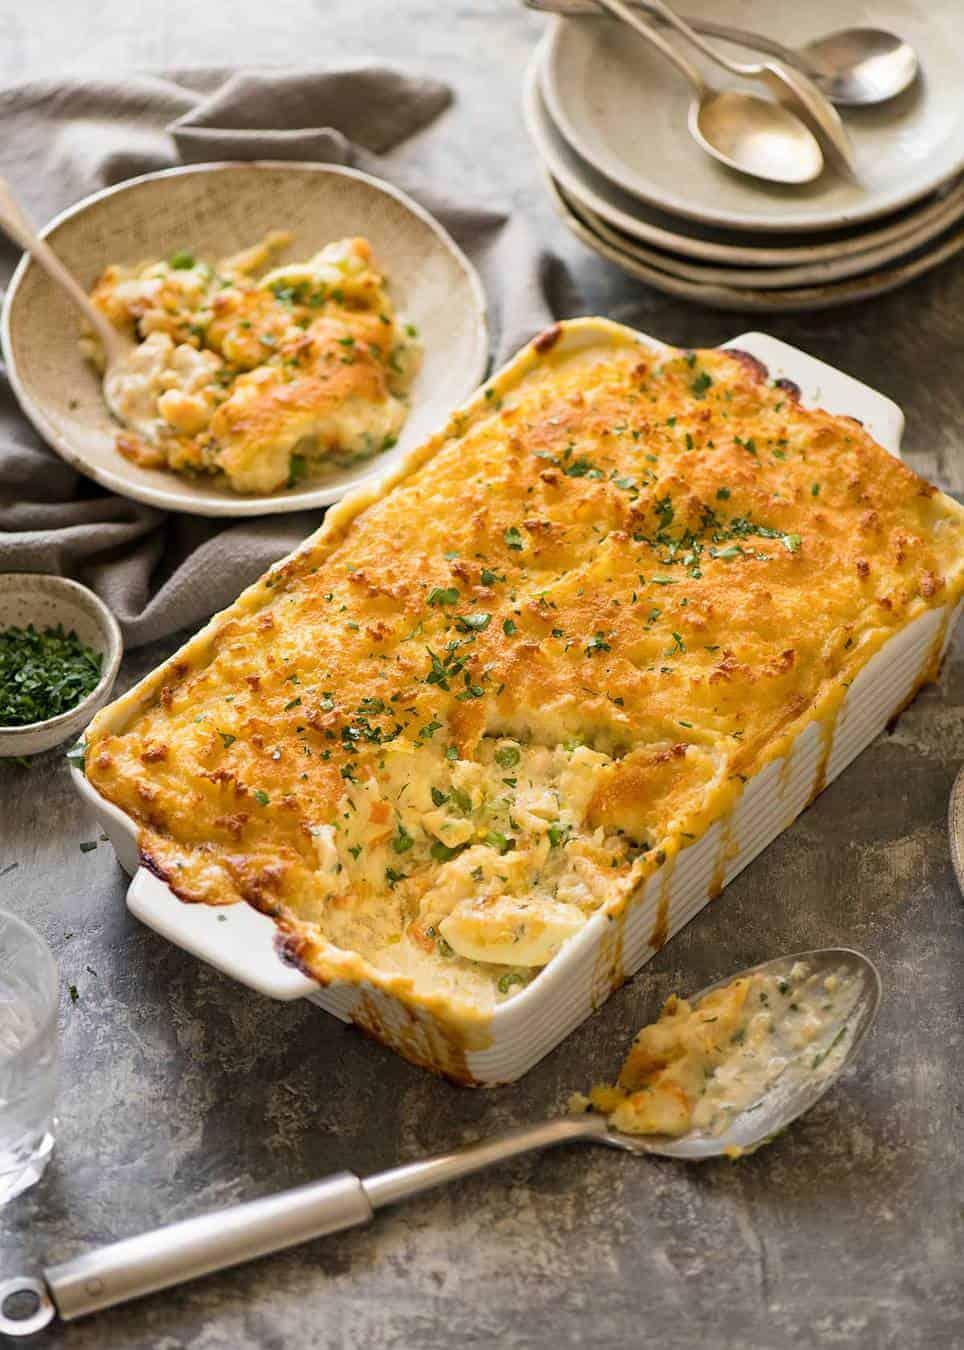 Fish Pie in white baking dish with serving plates